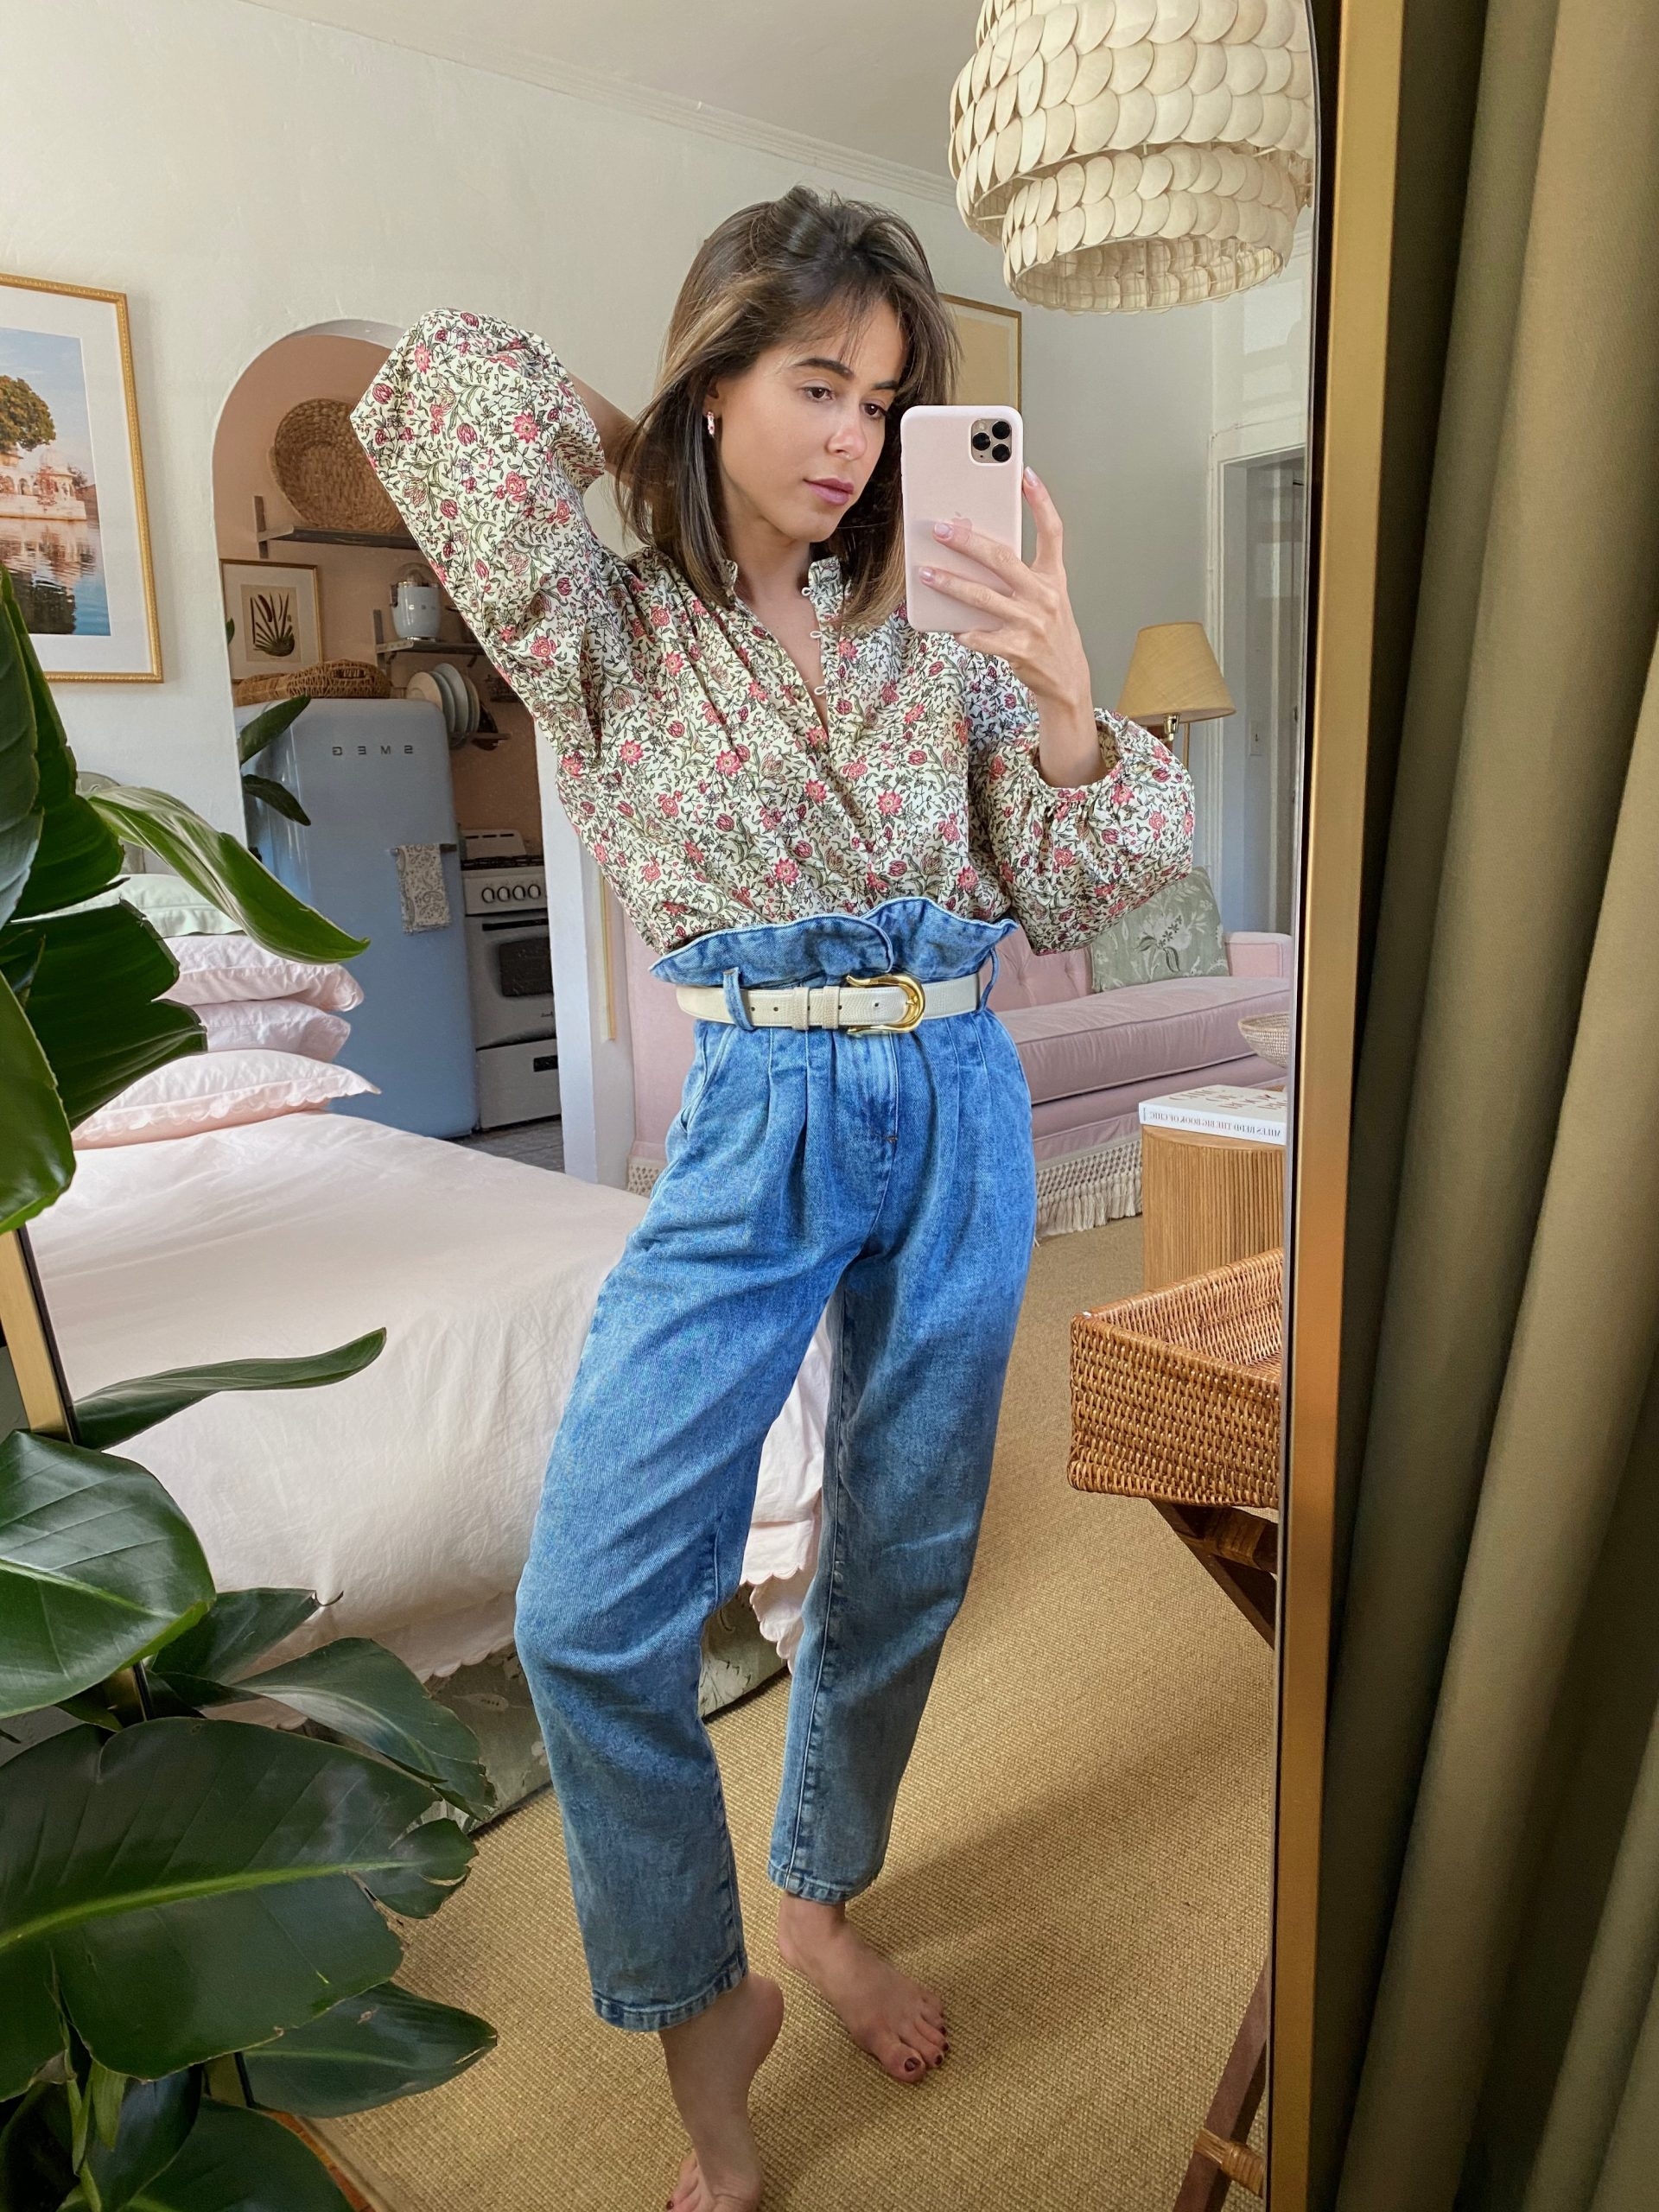 Stephanie Hill wears #ootd featuring Sezane jeans on The Style Bungalow